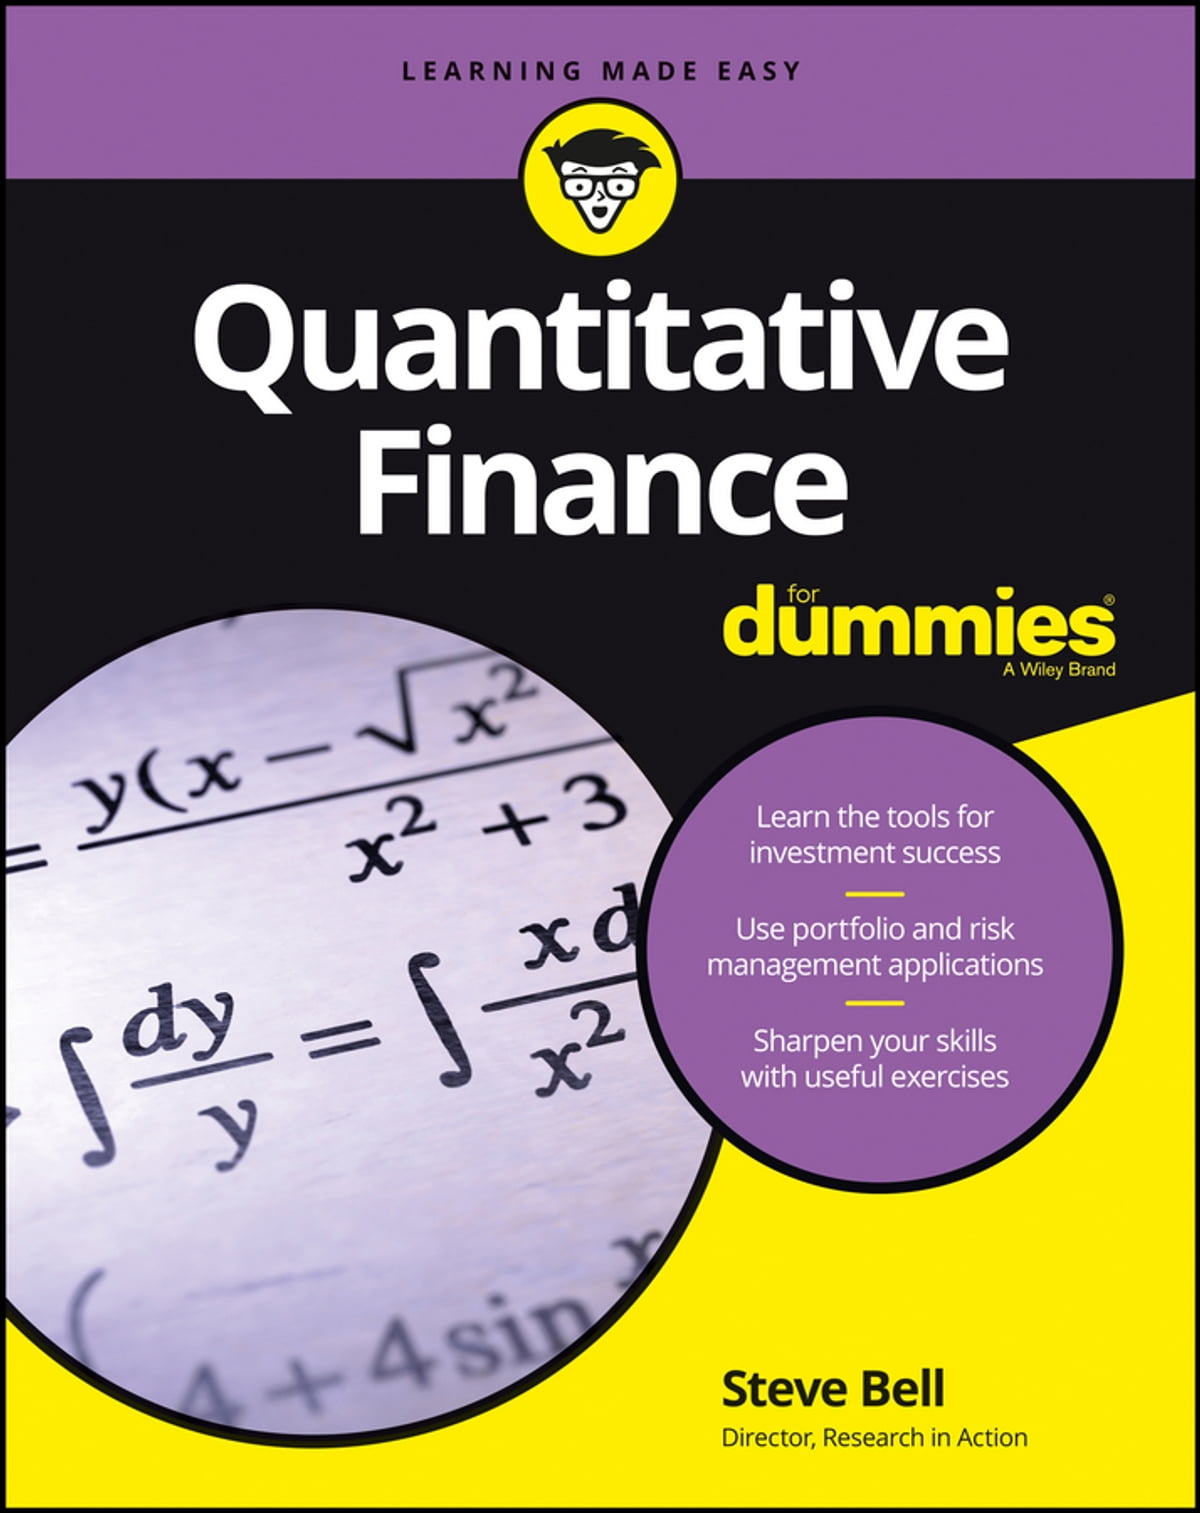 introduction to quantitative finance This text offers an accessible yet rigorous development of many of the fields of mathematics necessary for success in investment and quantitative finance, covering topics applicable to portfolio theory, investment banking, option pricing, investment, and insurance risk management.